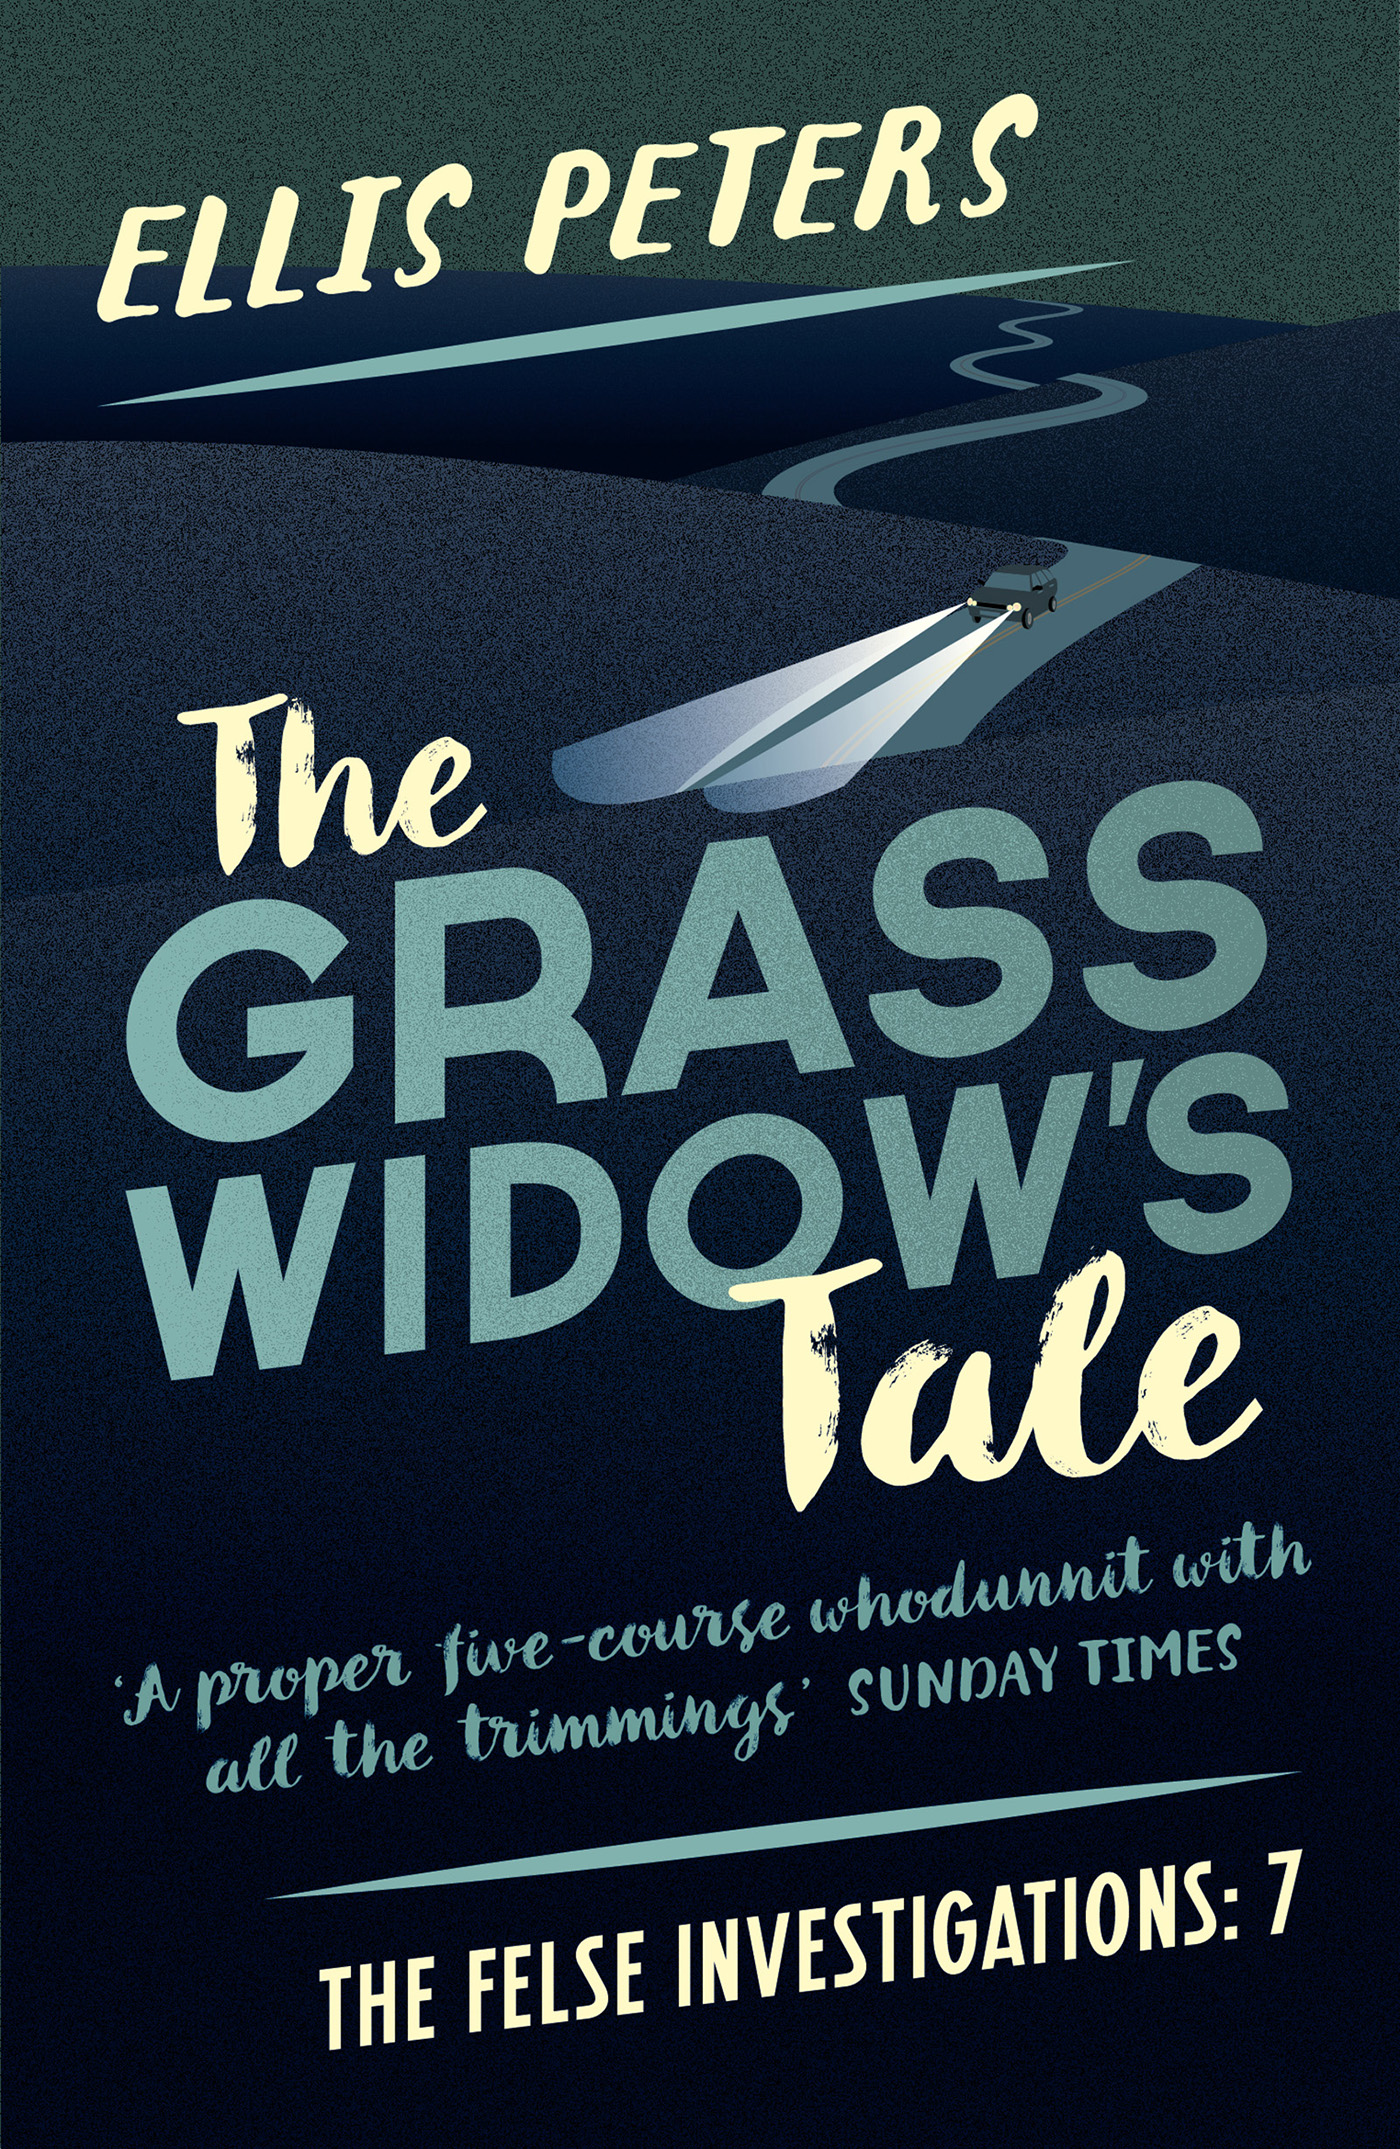 The Grass Widows Tale